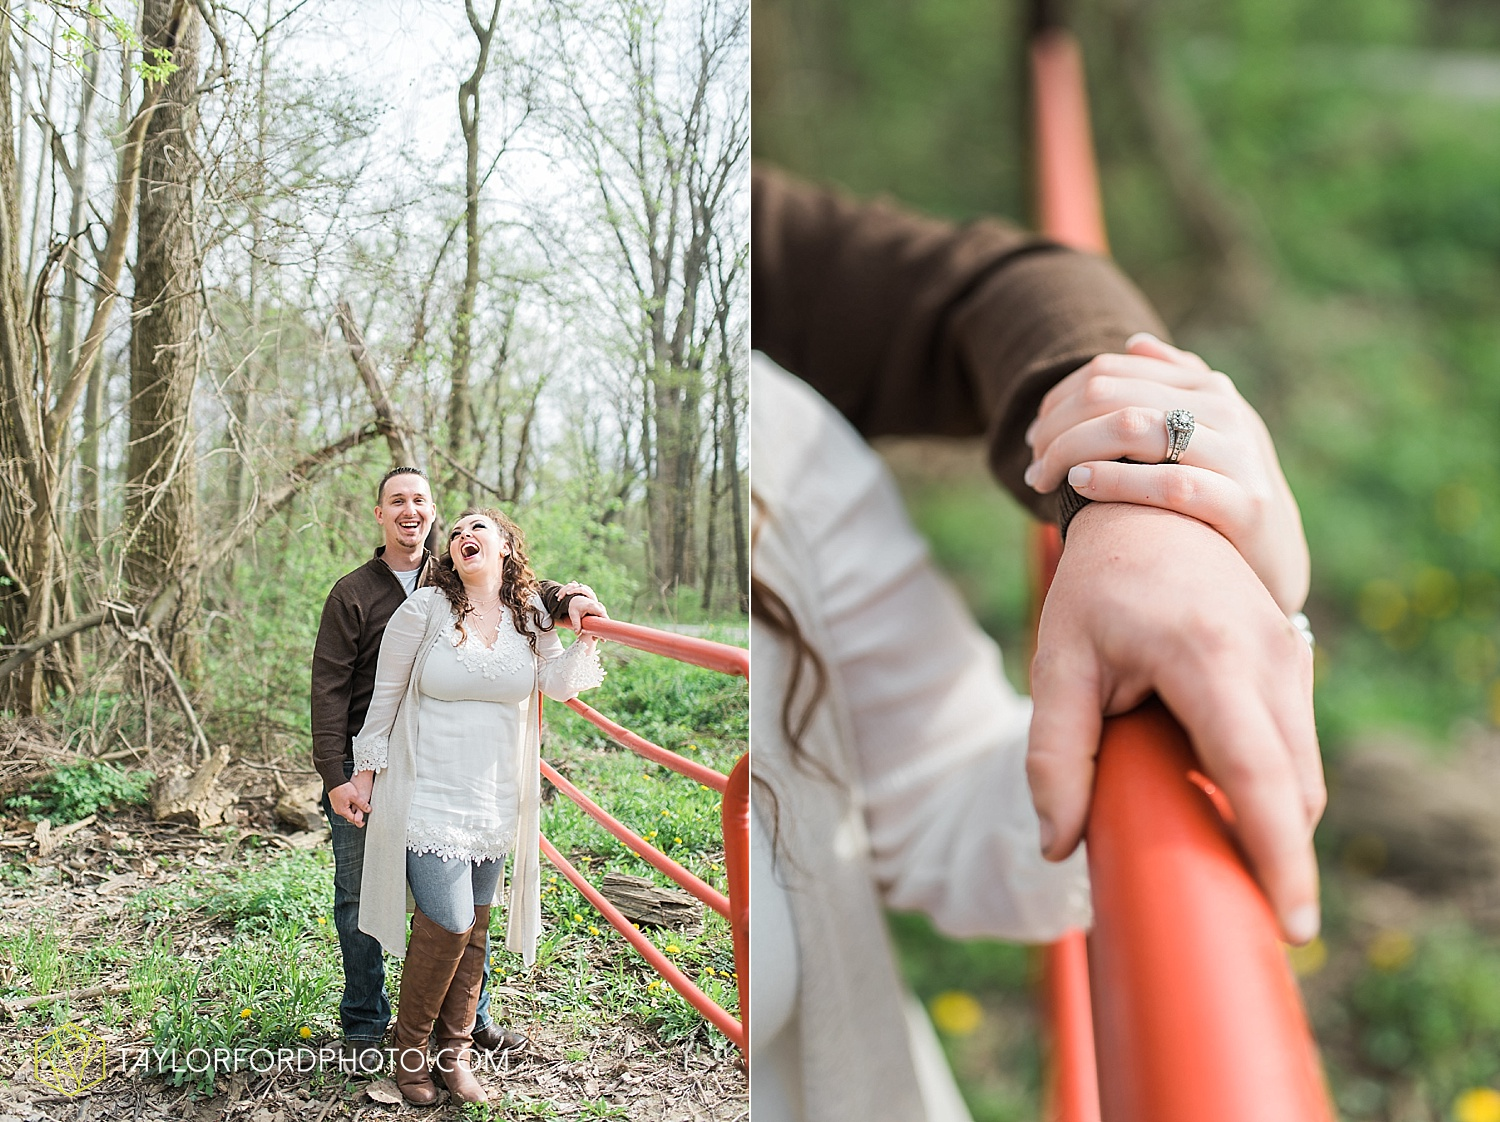 fort-wayne-indiana-engagement-wedding-photographer-taylor-ford-photography_1537.jpg